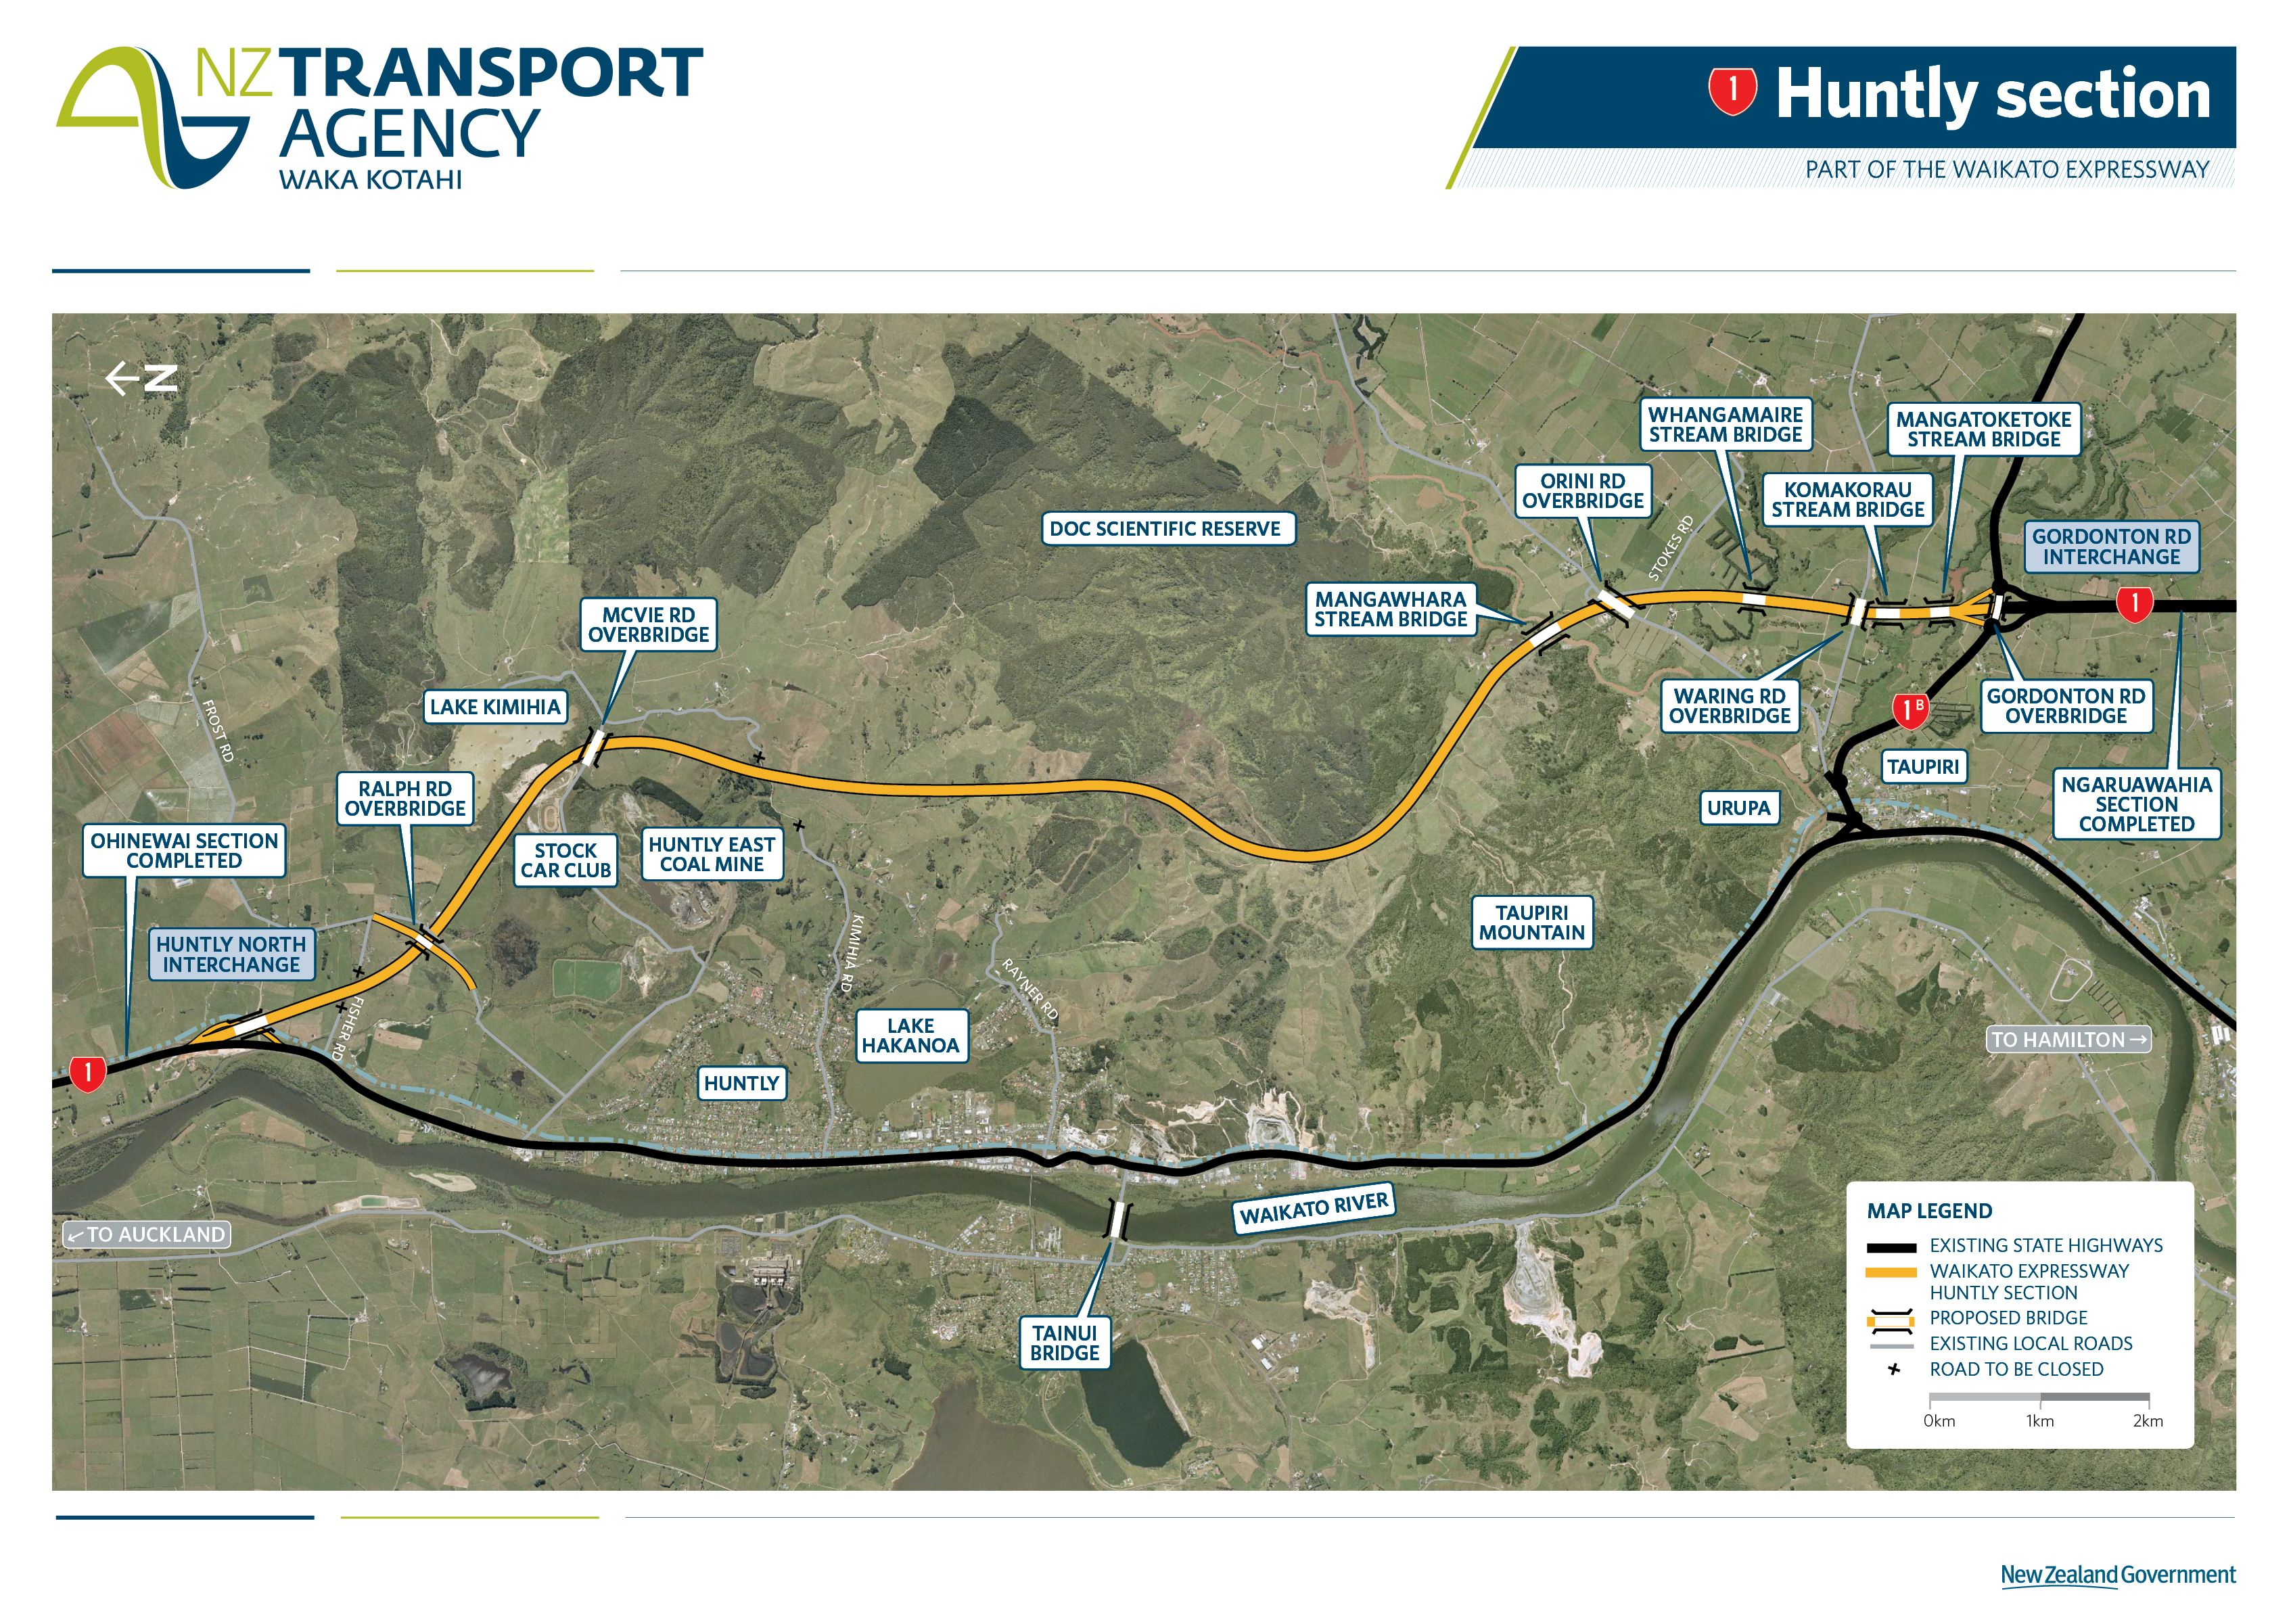 Huntly section overview_high res.jpg